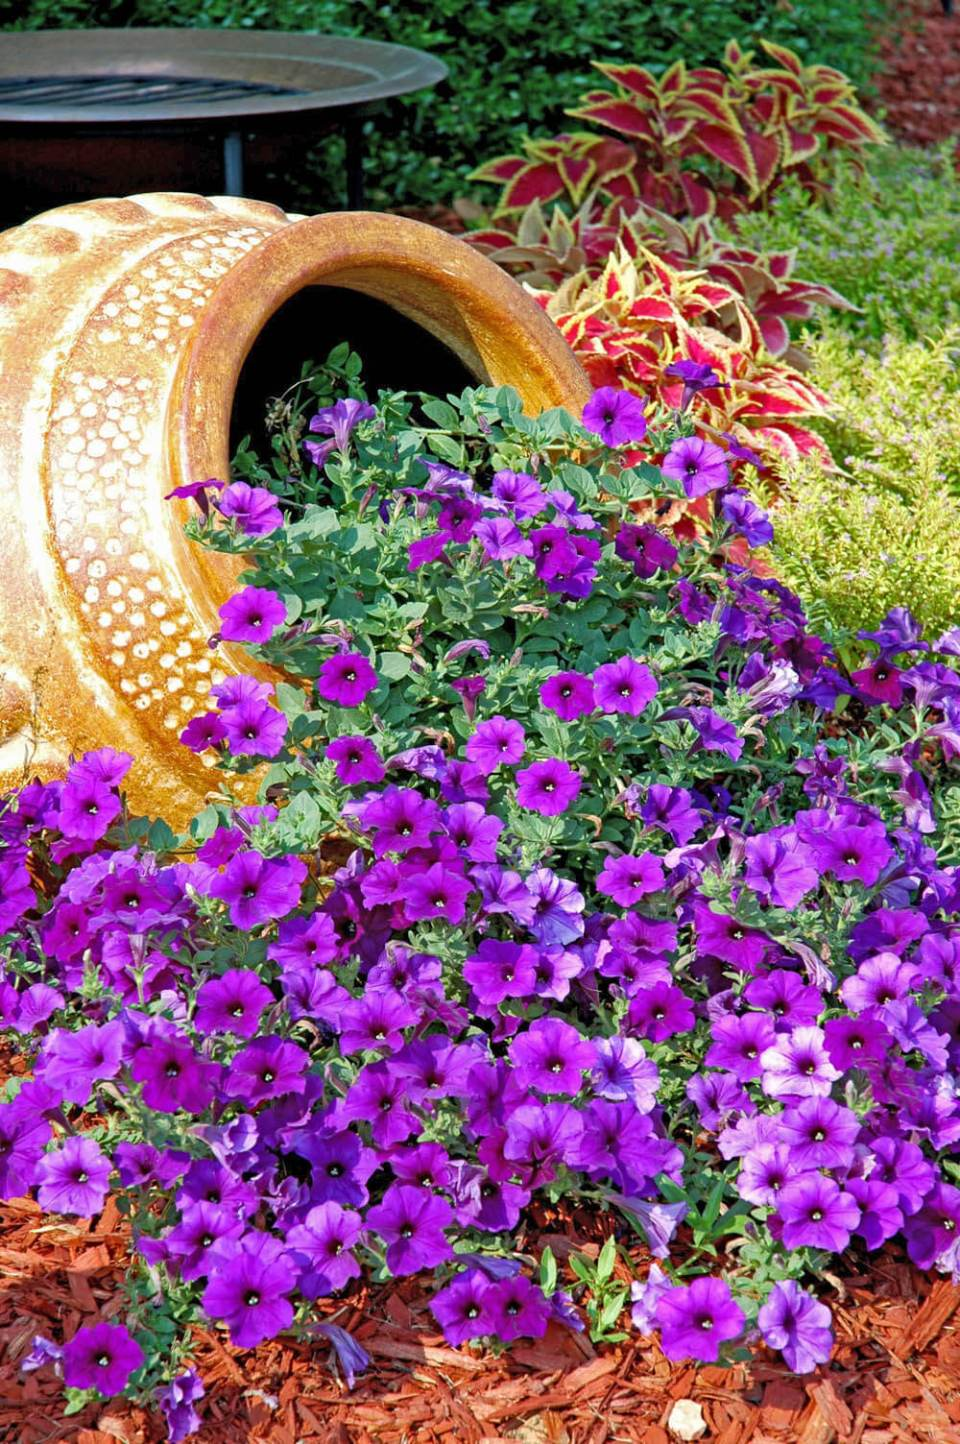 Petunias Overflowing from a Tilted Planter